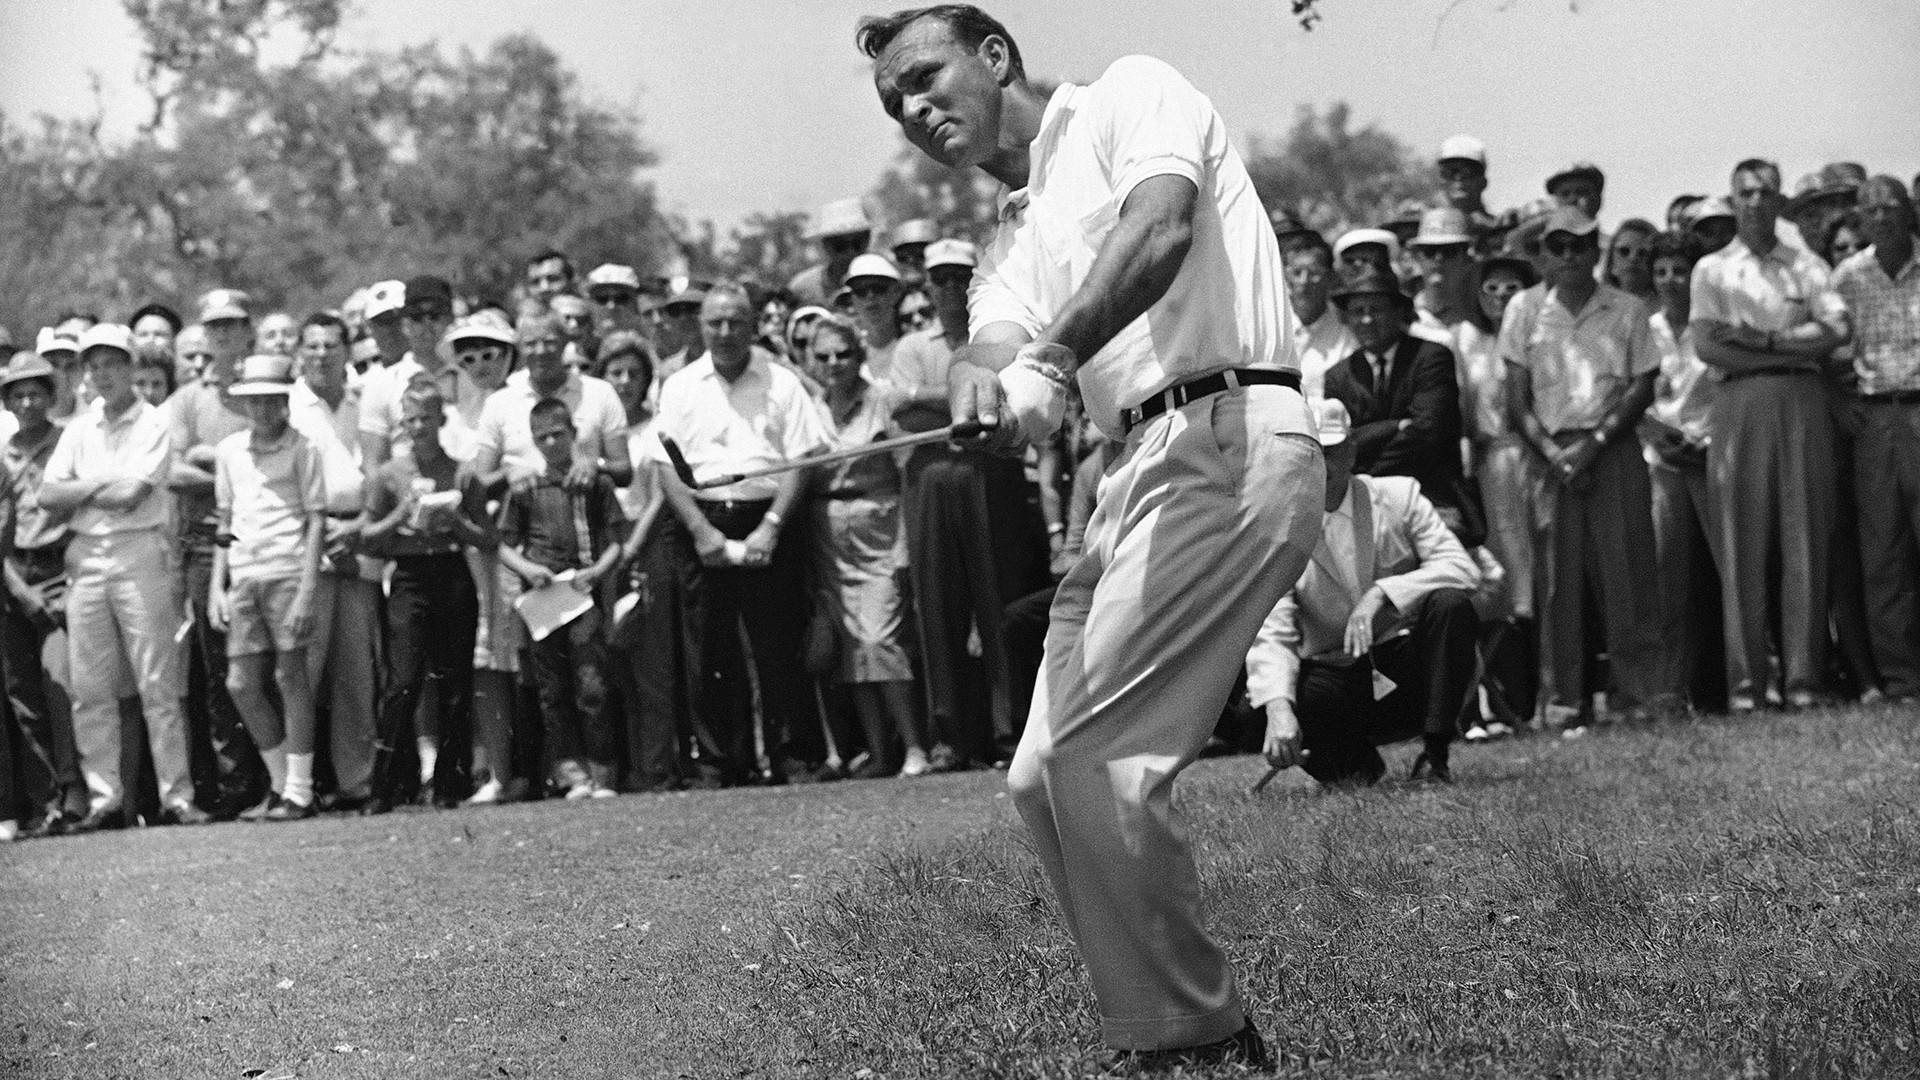 Arnold Palmer Pictures His Life In Photographs: Golf Legend Arnold Palmer Dead At 87